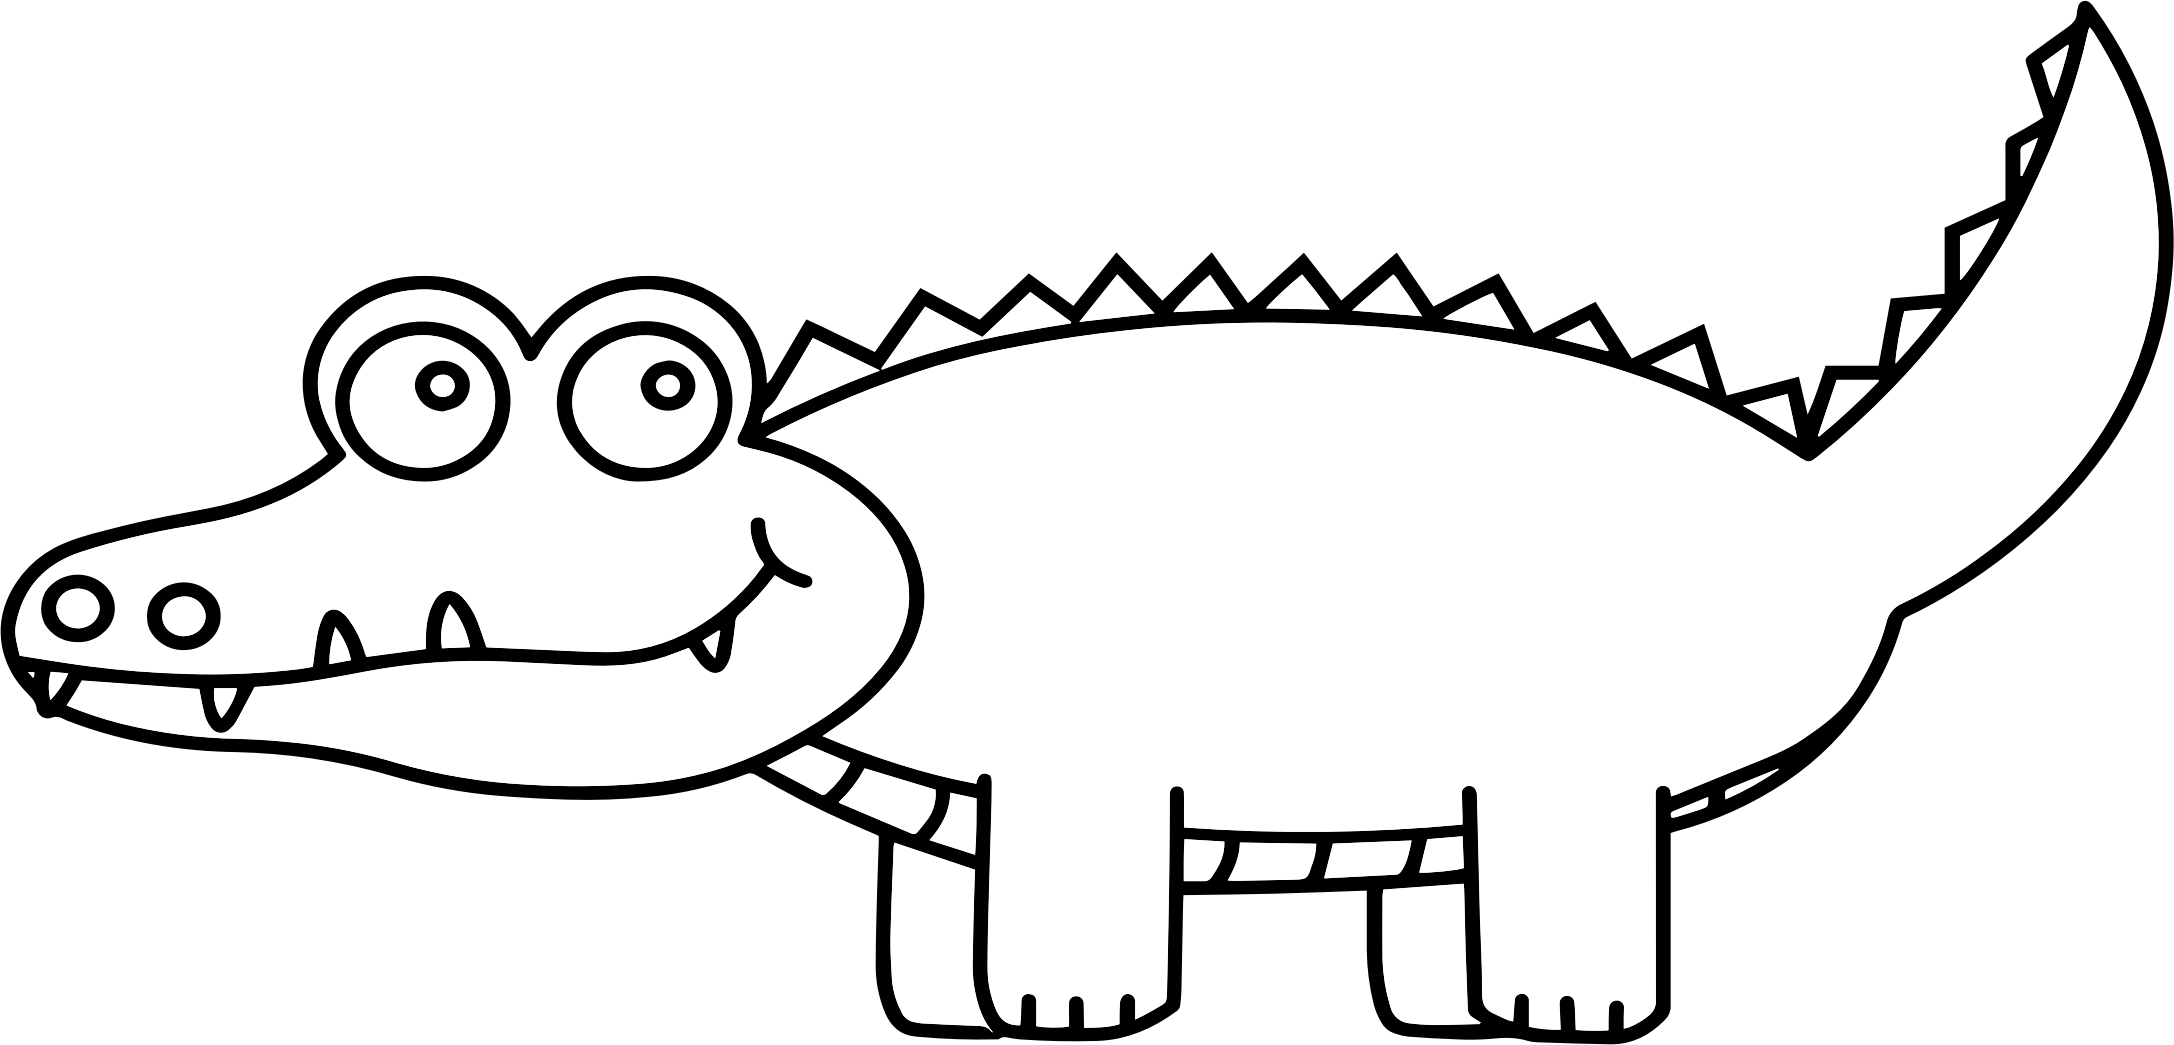 Alligator clipart. Black and white images